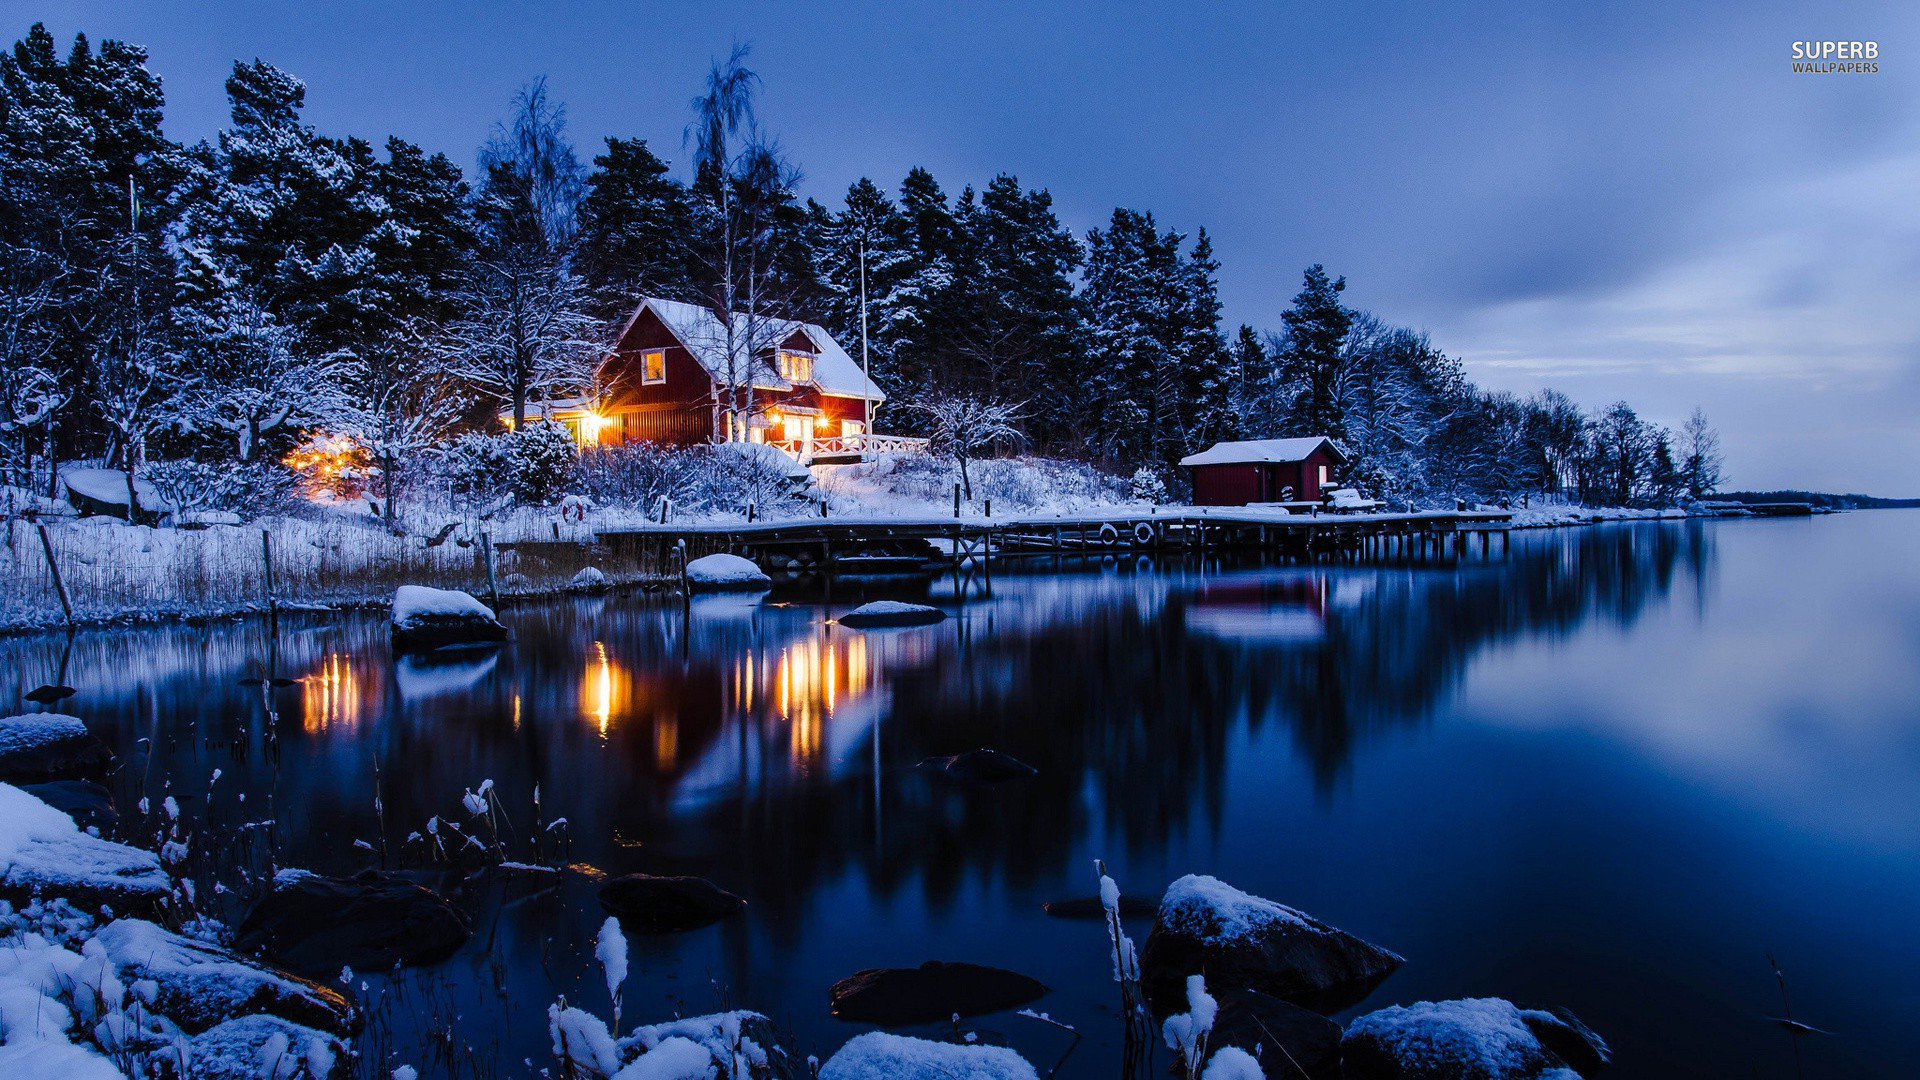 Winter cabin wallpaper for desktop 57 images for Wallpaper wallpaper wallpaper